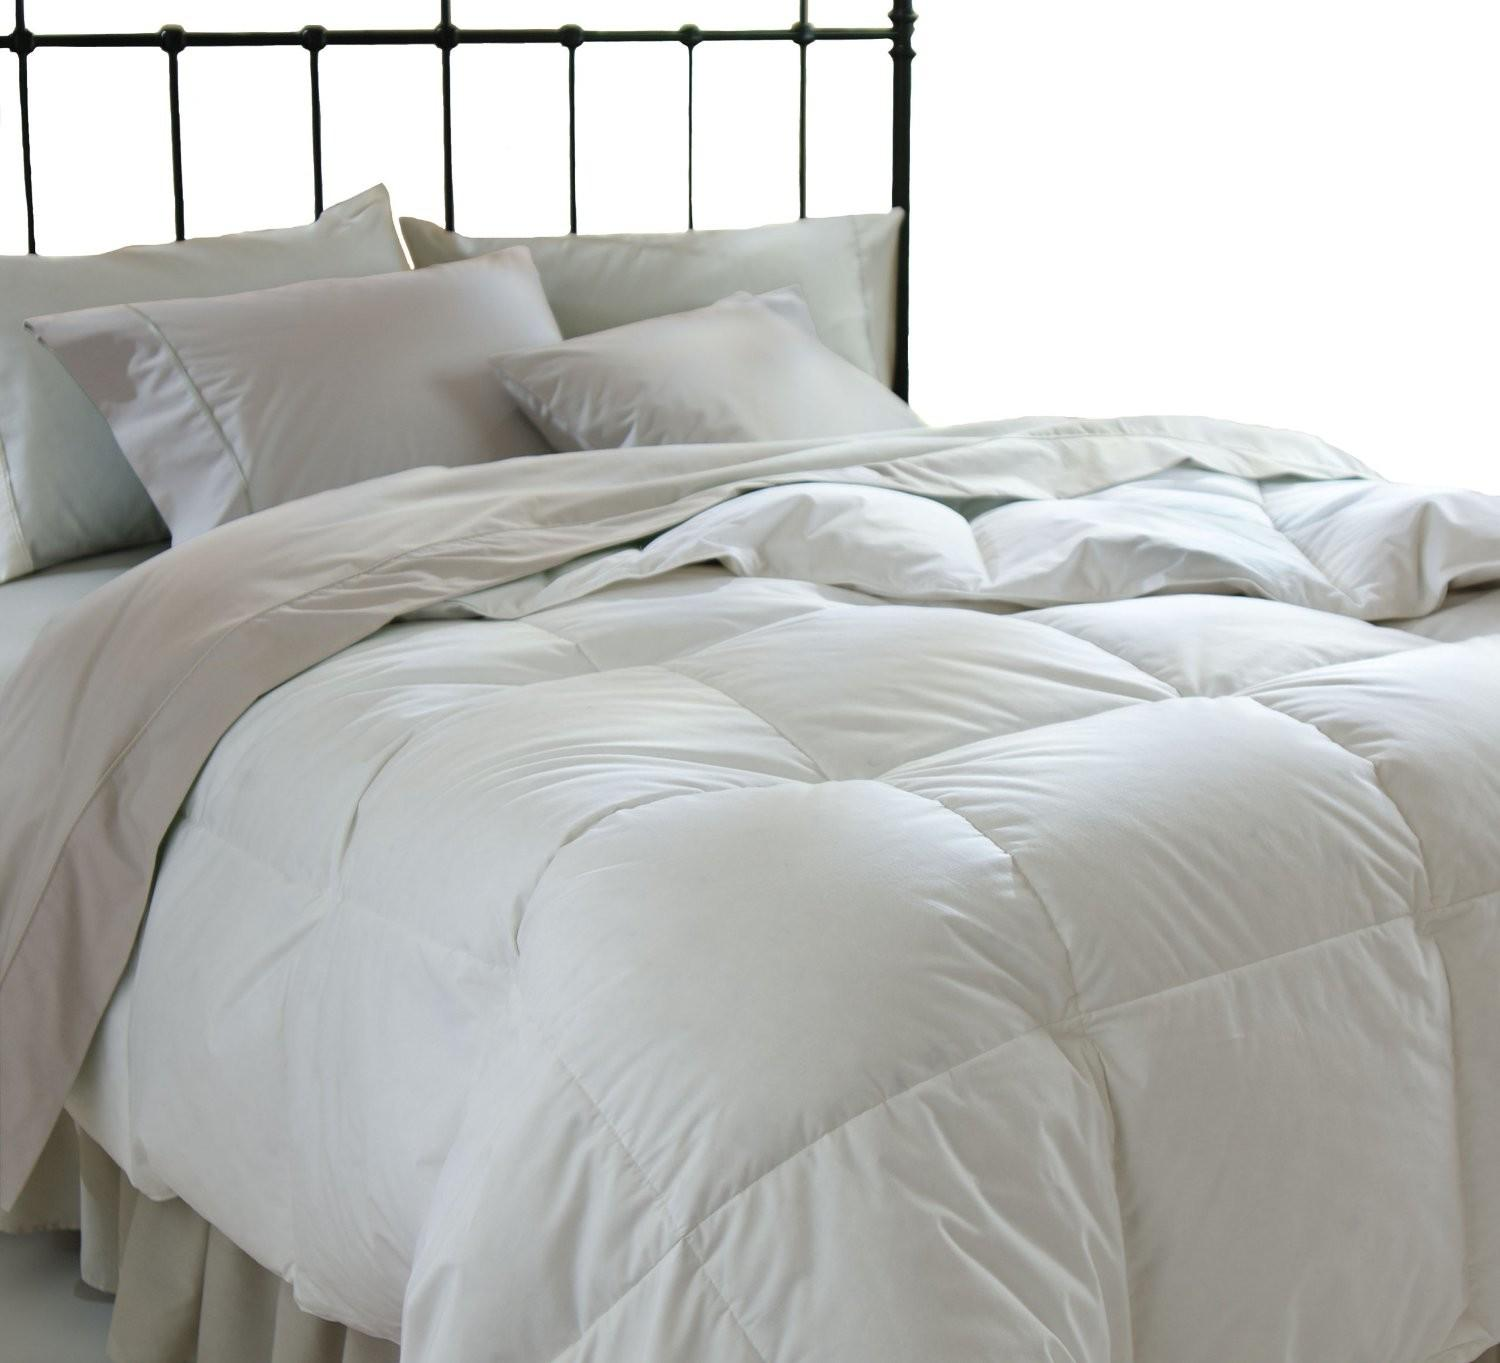 Down Comforter King Super Qualitydown Alternative